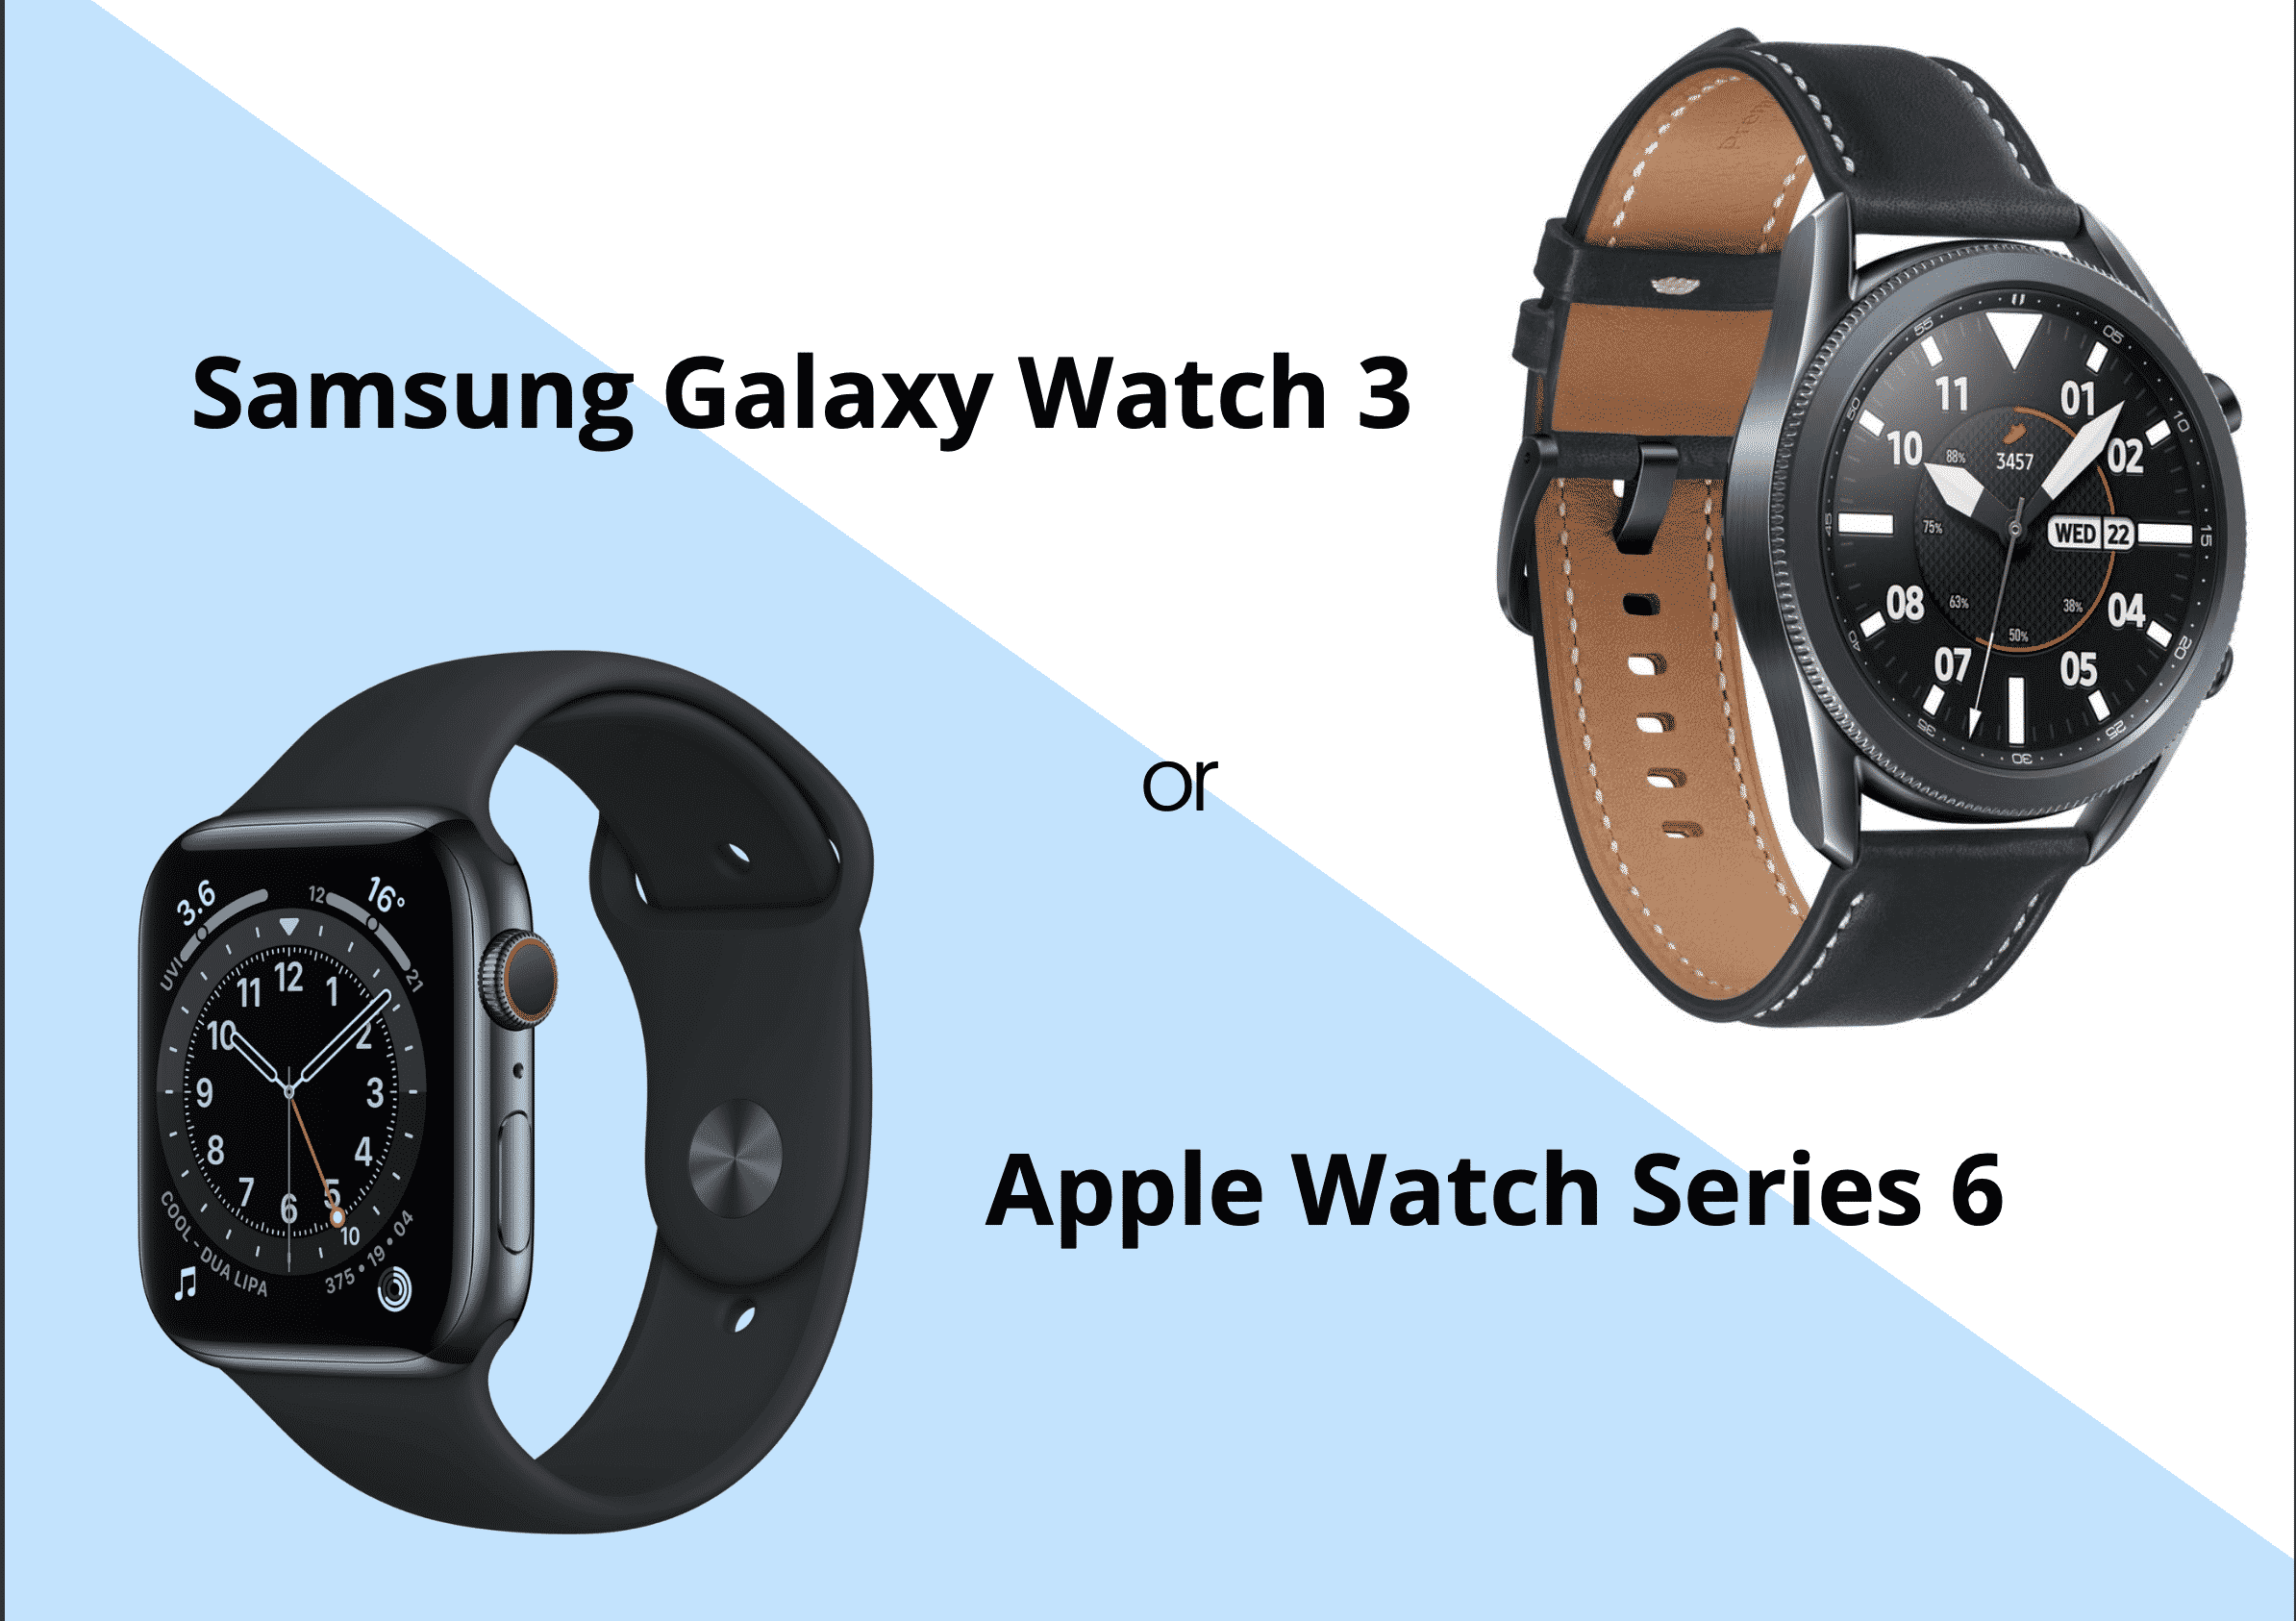 Honest Review: Apple Watch 6 vs Samsung Galaxy watch 3 – Which one should you buy?